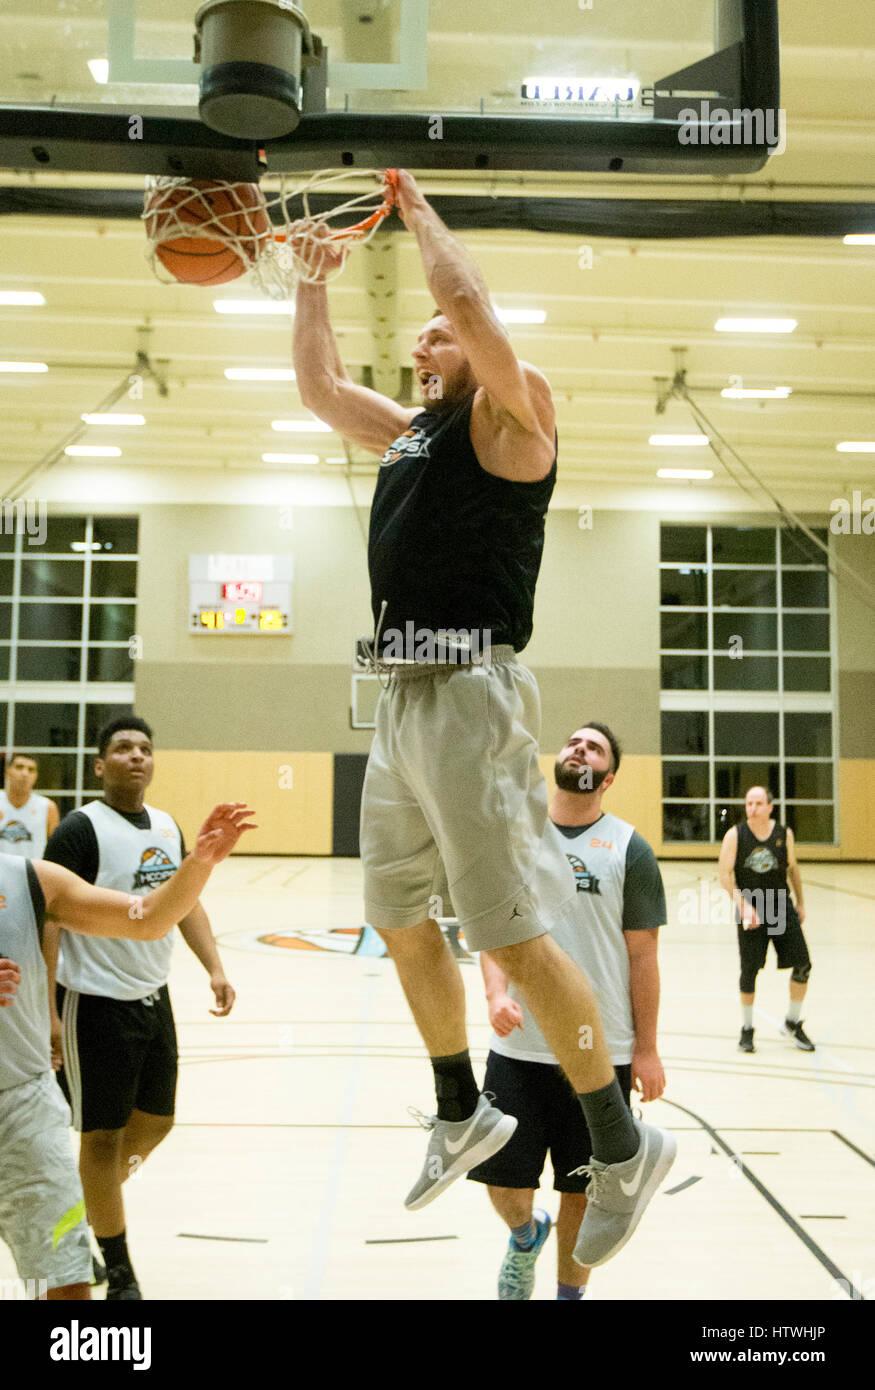 A basketball player dunking a ball - Stock Image